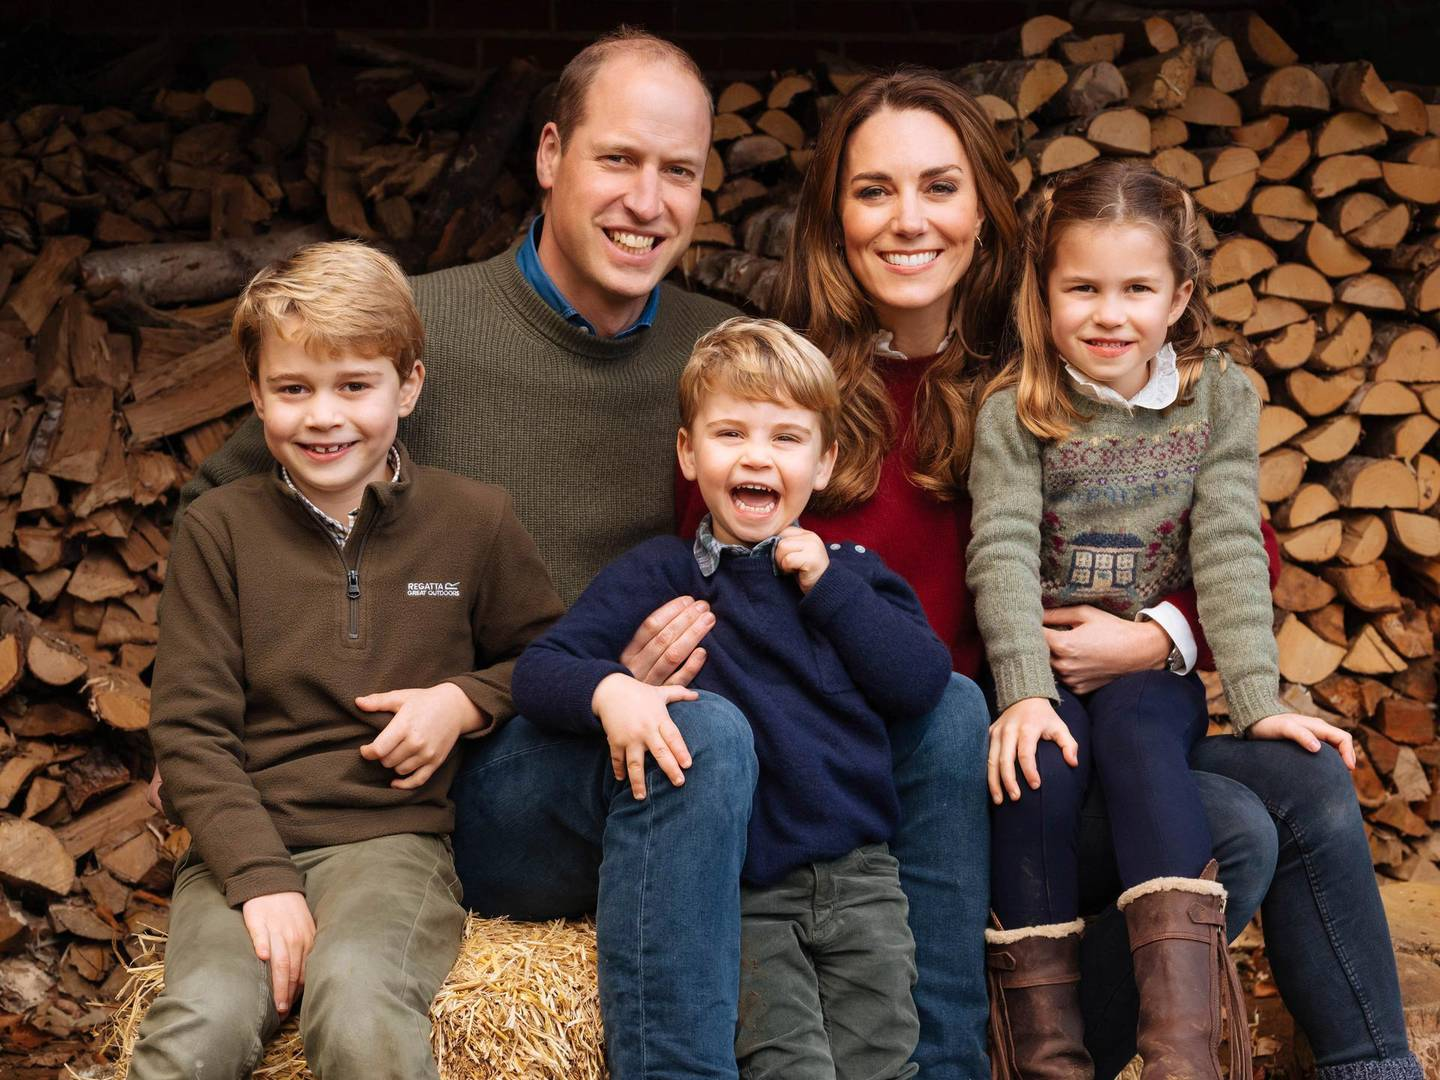 epa08889438 A handout photo made available by Kensington Palace of the 2020 Christmas card of the Duke and Duchess of Cambridge which features an image taken in the autumn by photographer Matt Porteous showing the Duke and Duchess with their three children Prince George (left), Princess Charlotte (right) and Prince Louis at Anmer Hall in Norfolk.   NOTE TO EDITORS: This handout photo may only be used in for editorial reporting purposes for the contemporaneous illustration of events, things or the people in the image or facts mentioned in the caption. Reuse of the picture may require further permission from the copyright holder.  EPA/Matt Porteous / KENSINGTON PALACE /HANDOUT THIS IMAGE IS PROVIDED FOR FREE EDITORIAL USE UNTIL DECEMBER 31, 2021 WHEN IT MUST BE REMOVED FROM ALL SYSTEMS AND THOSE OF YOUR SUBSCRIBERS. USE OF THE IMAGE AFTER THIS DATE WILL REQUIRE PERMISSION FROM KENSINGTON PALACE. THIS PHOTOGRAPH IS STRICTLY FOR E HANDOUT EDITORIAL USE ONLY/NO SALES